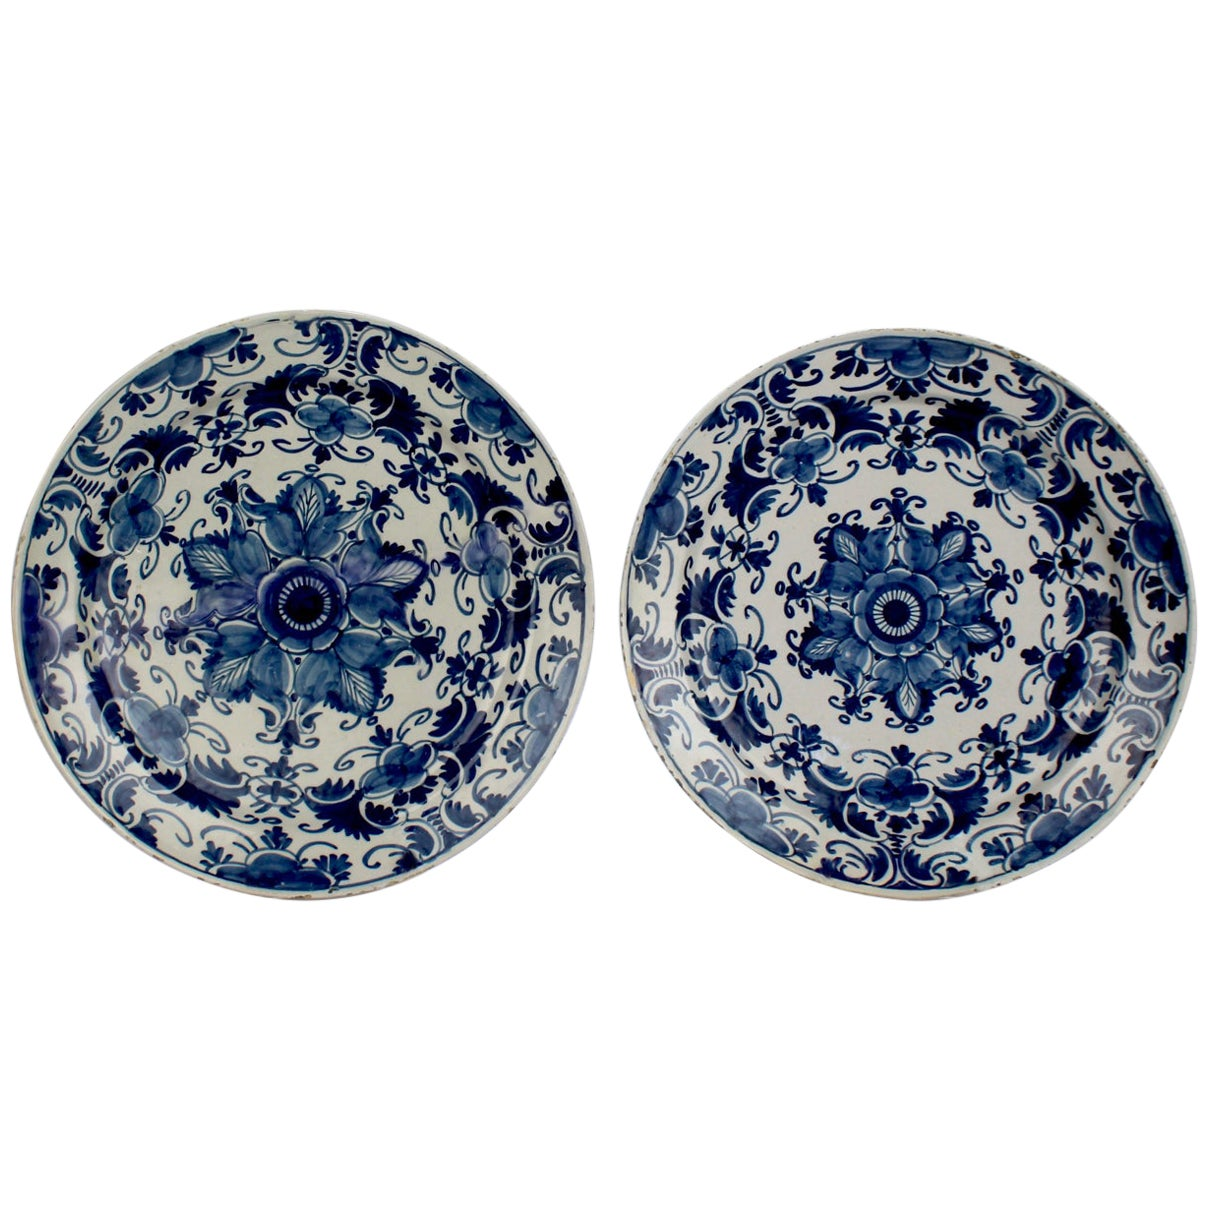 Pair of Large Matched 18th Century Blue and White Delft Chargers or Wall Plates